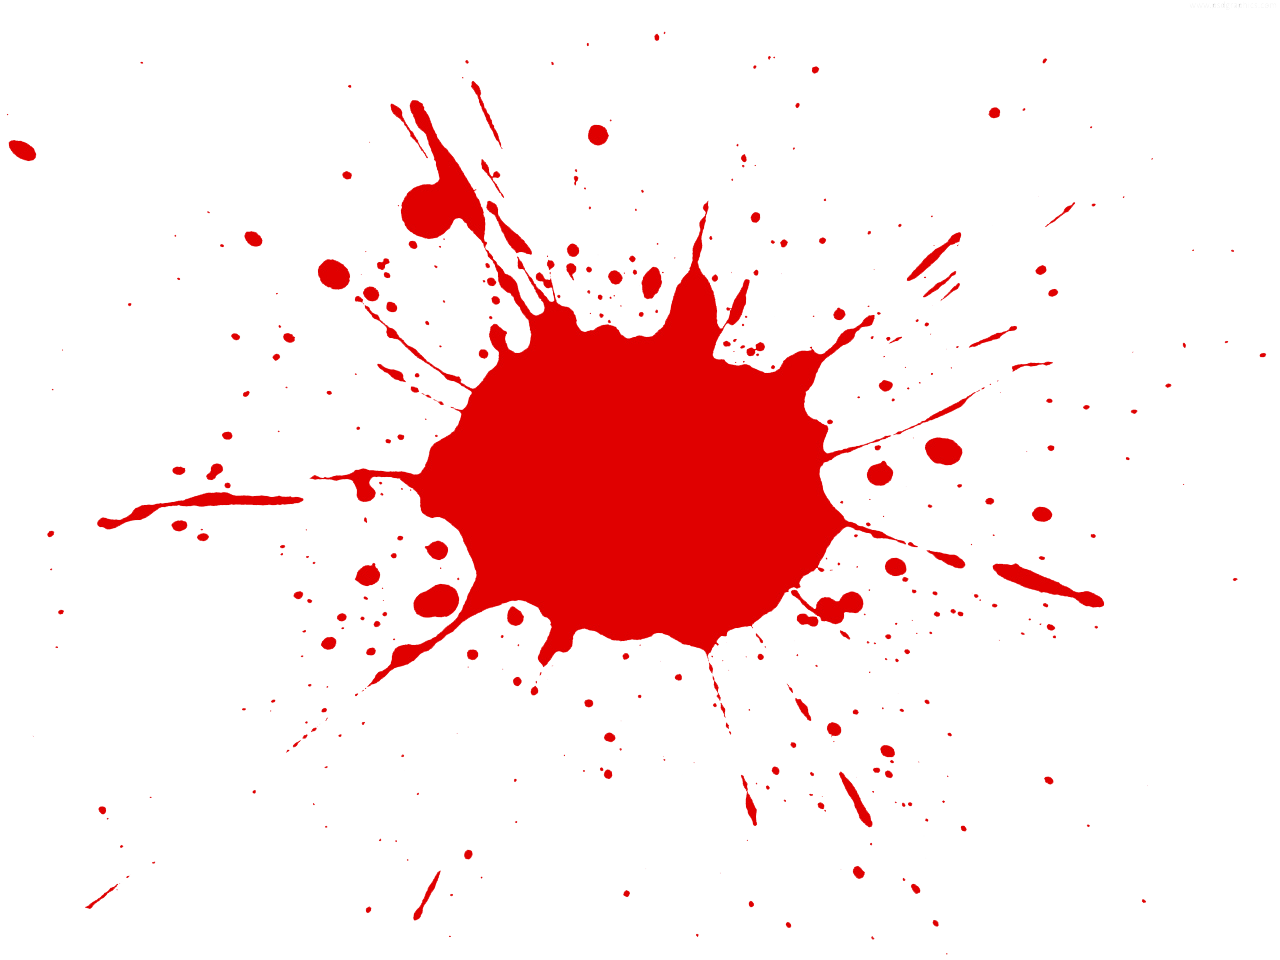 Red paint splatter clip art.